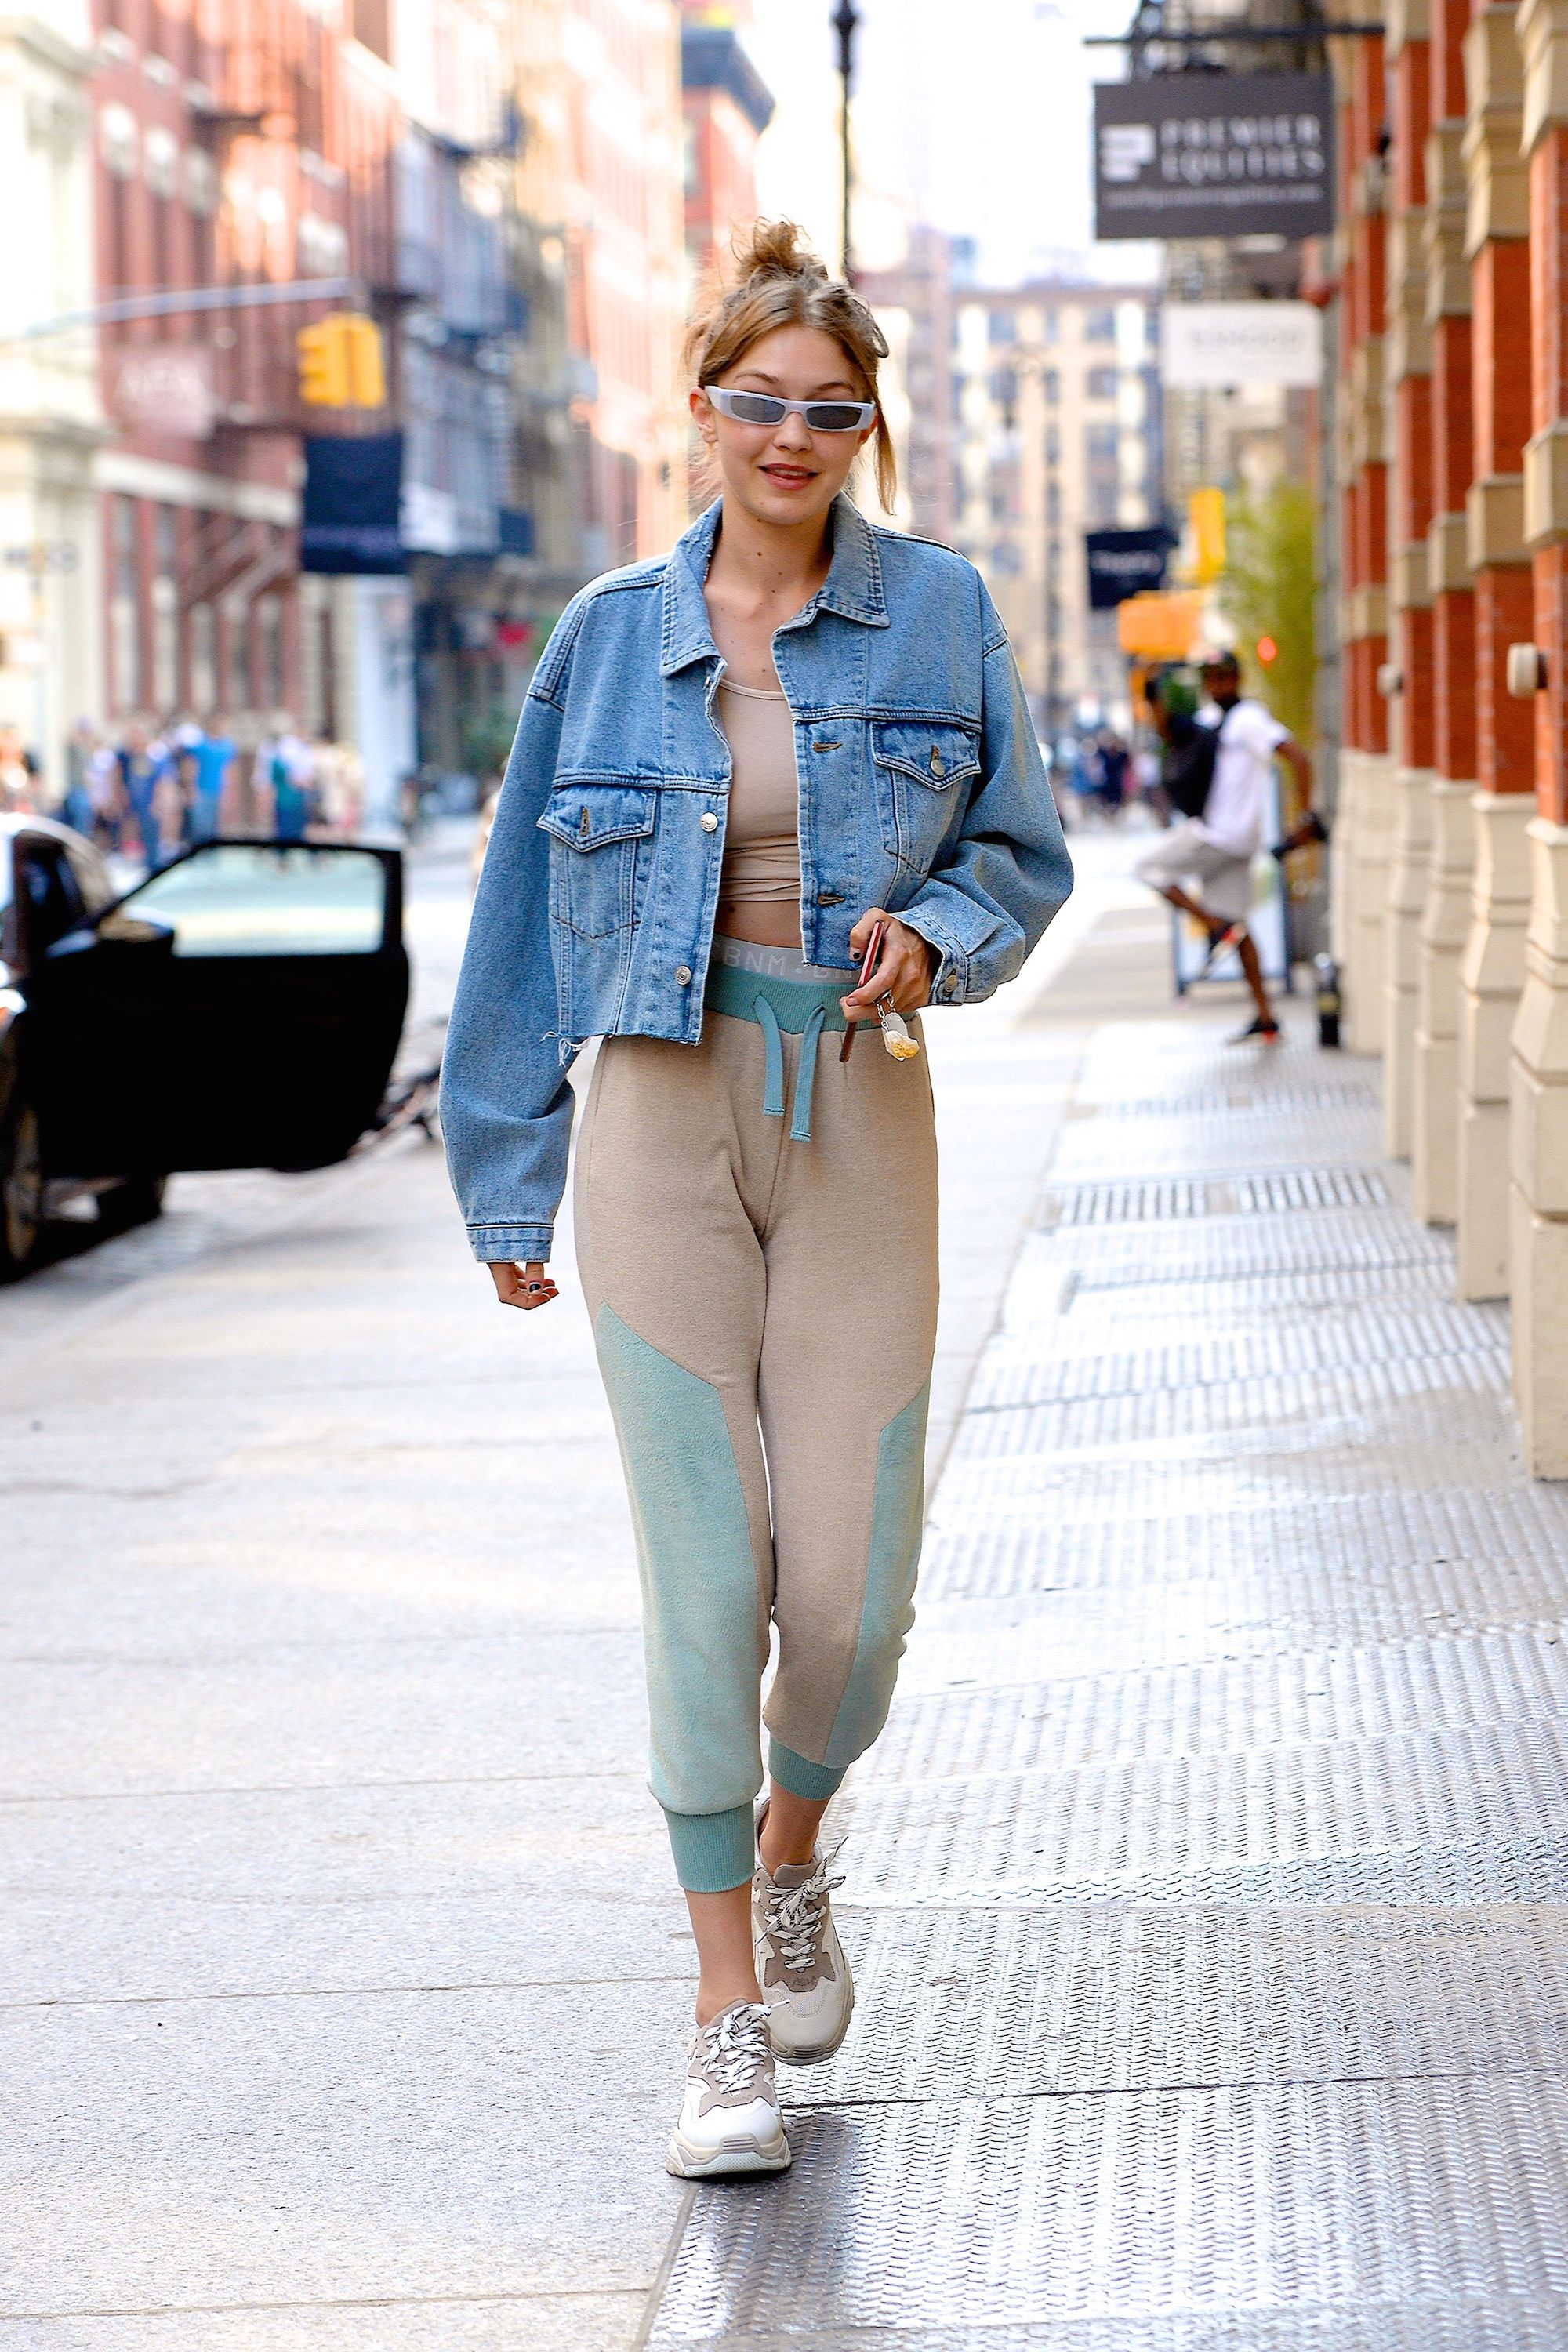 June 18, 2018 Hadid left her apartment in a cool pair of two-toned sweatpants by Sebnemgunay. She styled the look with a cropped denim jacket from the Miss Sixty x Elizabeth Sulcer collection and wore her fave Ash sneakers and Alexandre Vauthier x Alain Mikli sunglasses.